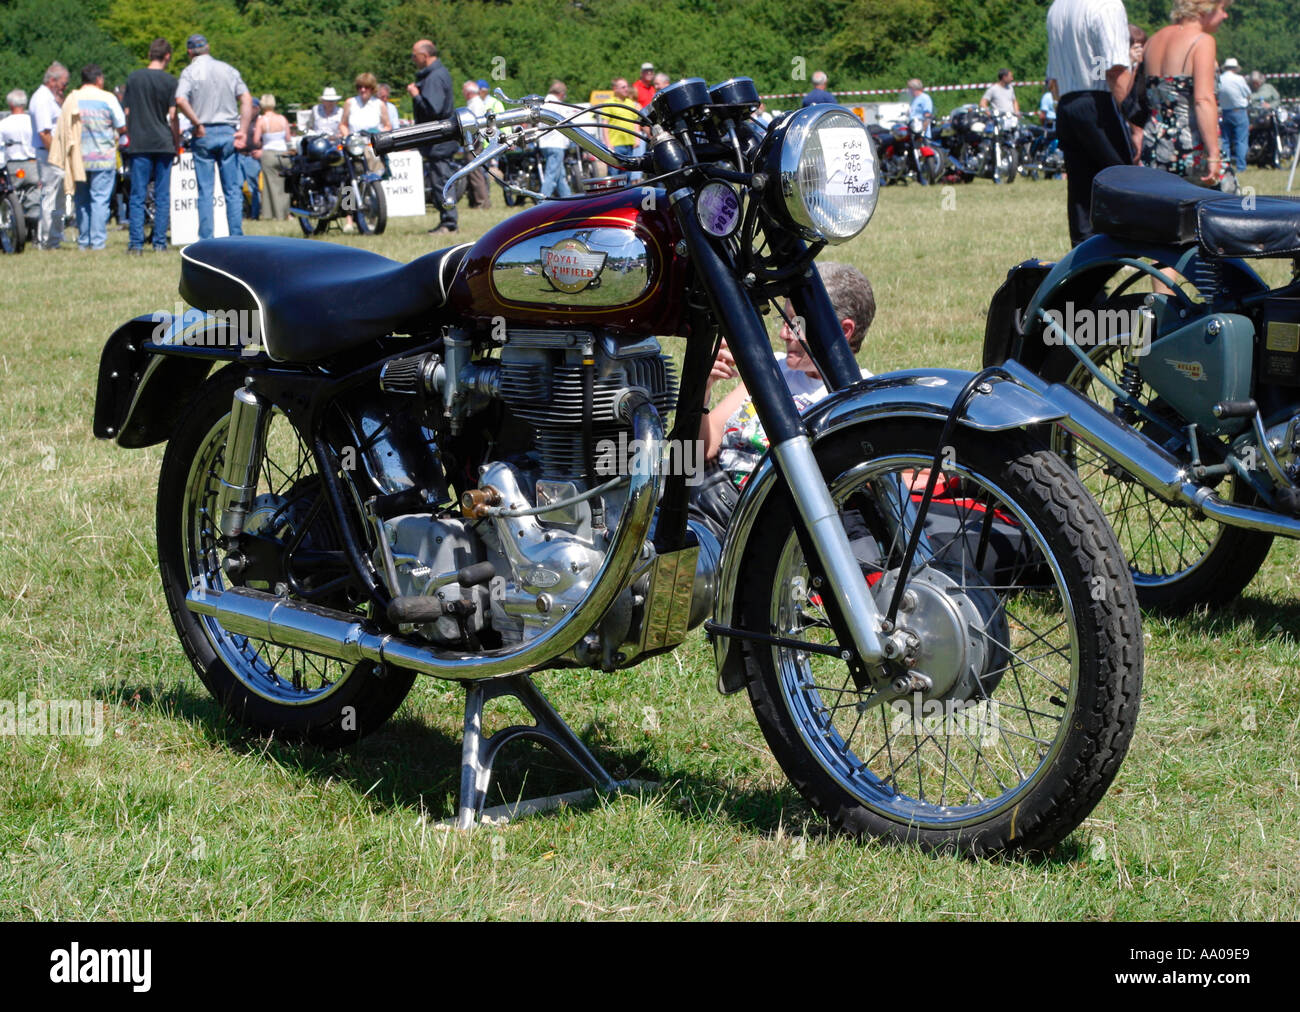 Buy Your Motorcycle >> 1960 Royal Enfield Fury 500cc motorcycle Stock Photo, Royalty Free Image: 657897 - Alamy